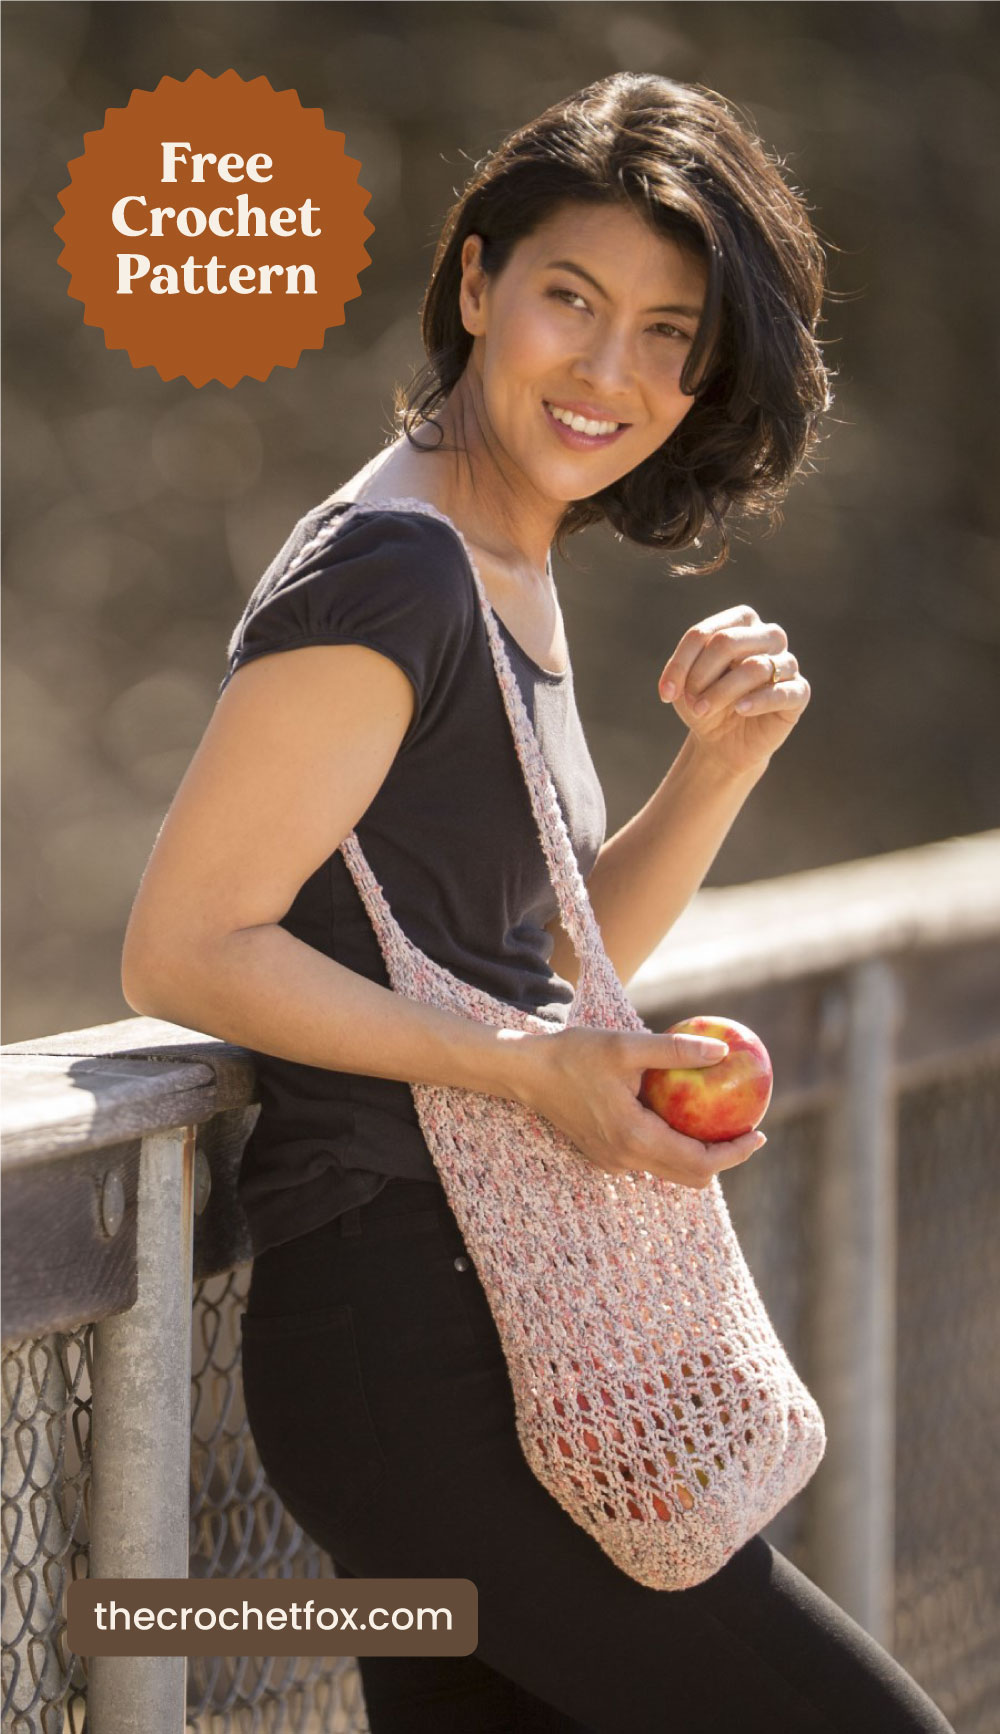 """Text area which says """"Free Crochet Pattern"""" next to a woman carrying a white crochet bag and an apple followed by another text area which says """"thecrochetfox.com"""""""